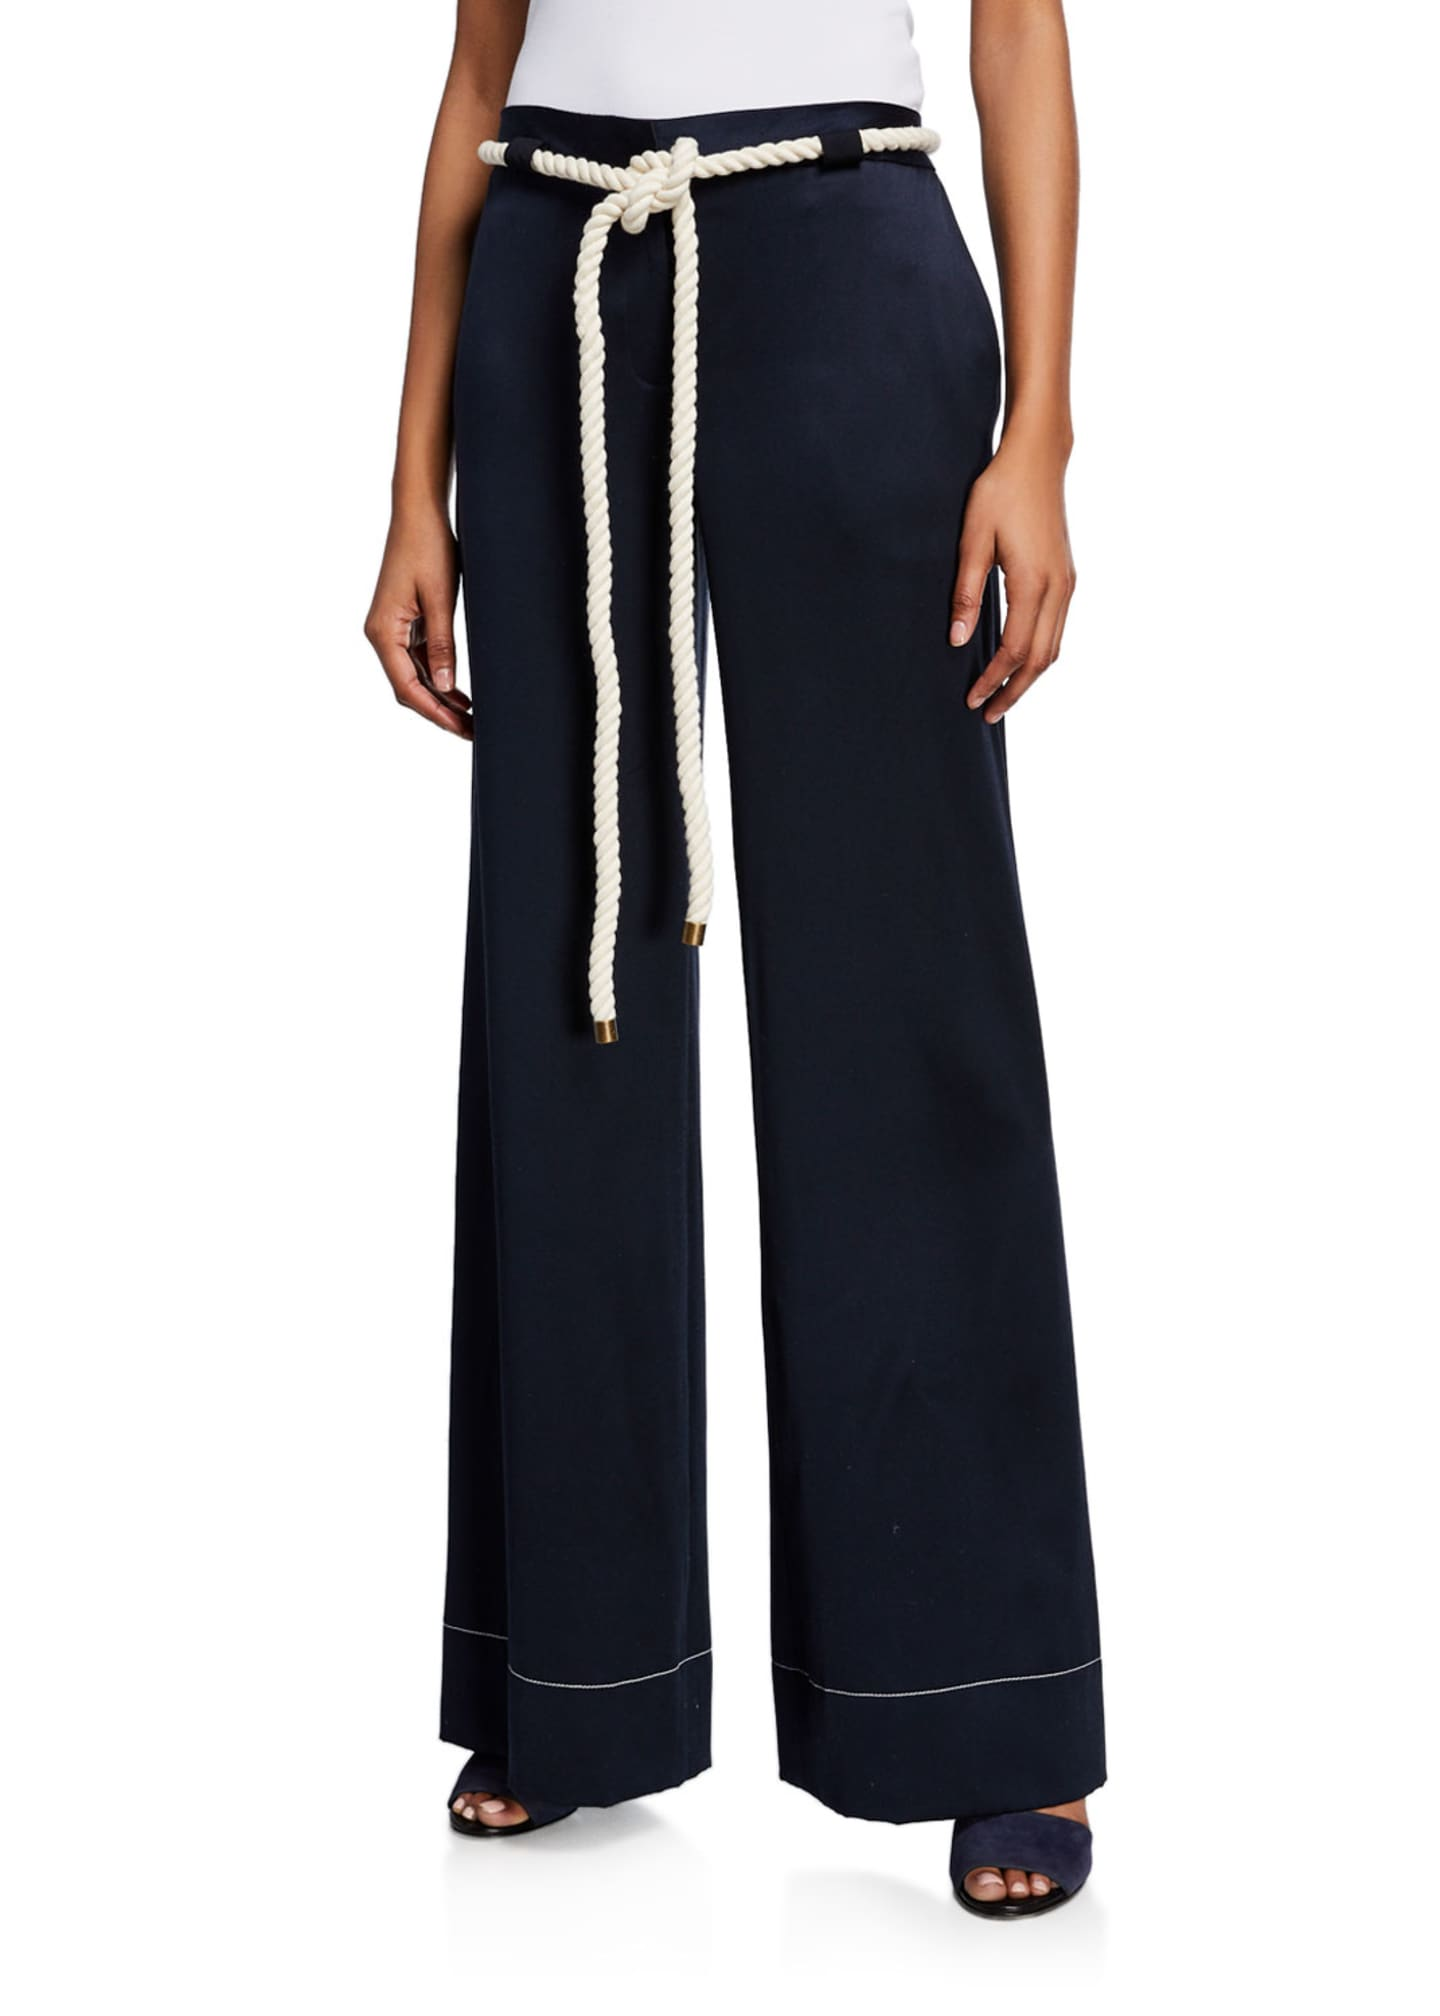 Monse Rope-Belted Wide Leg Pants